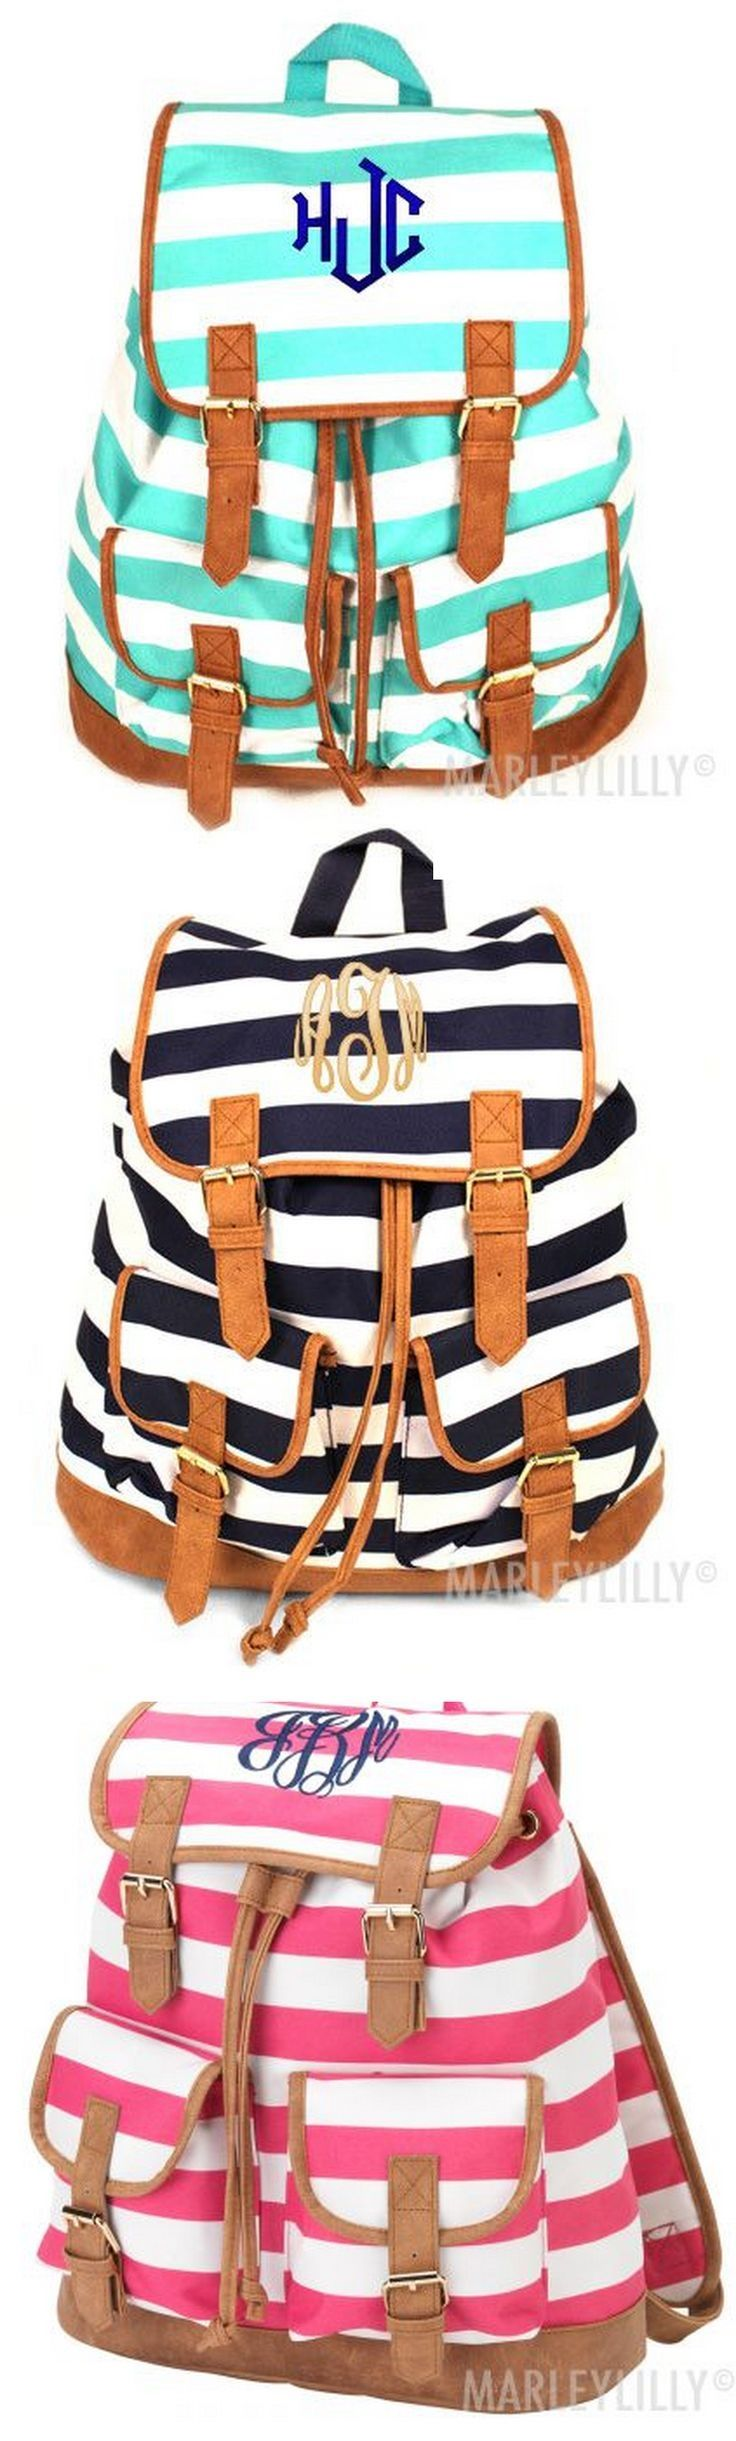 A monogram backpack from Marleylilly